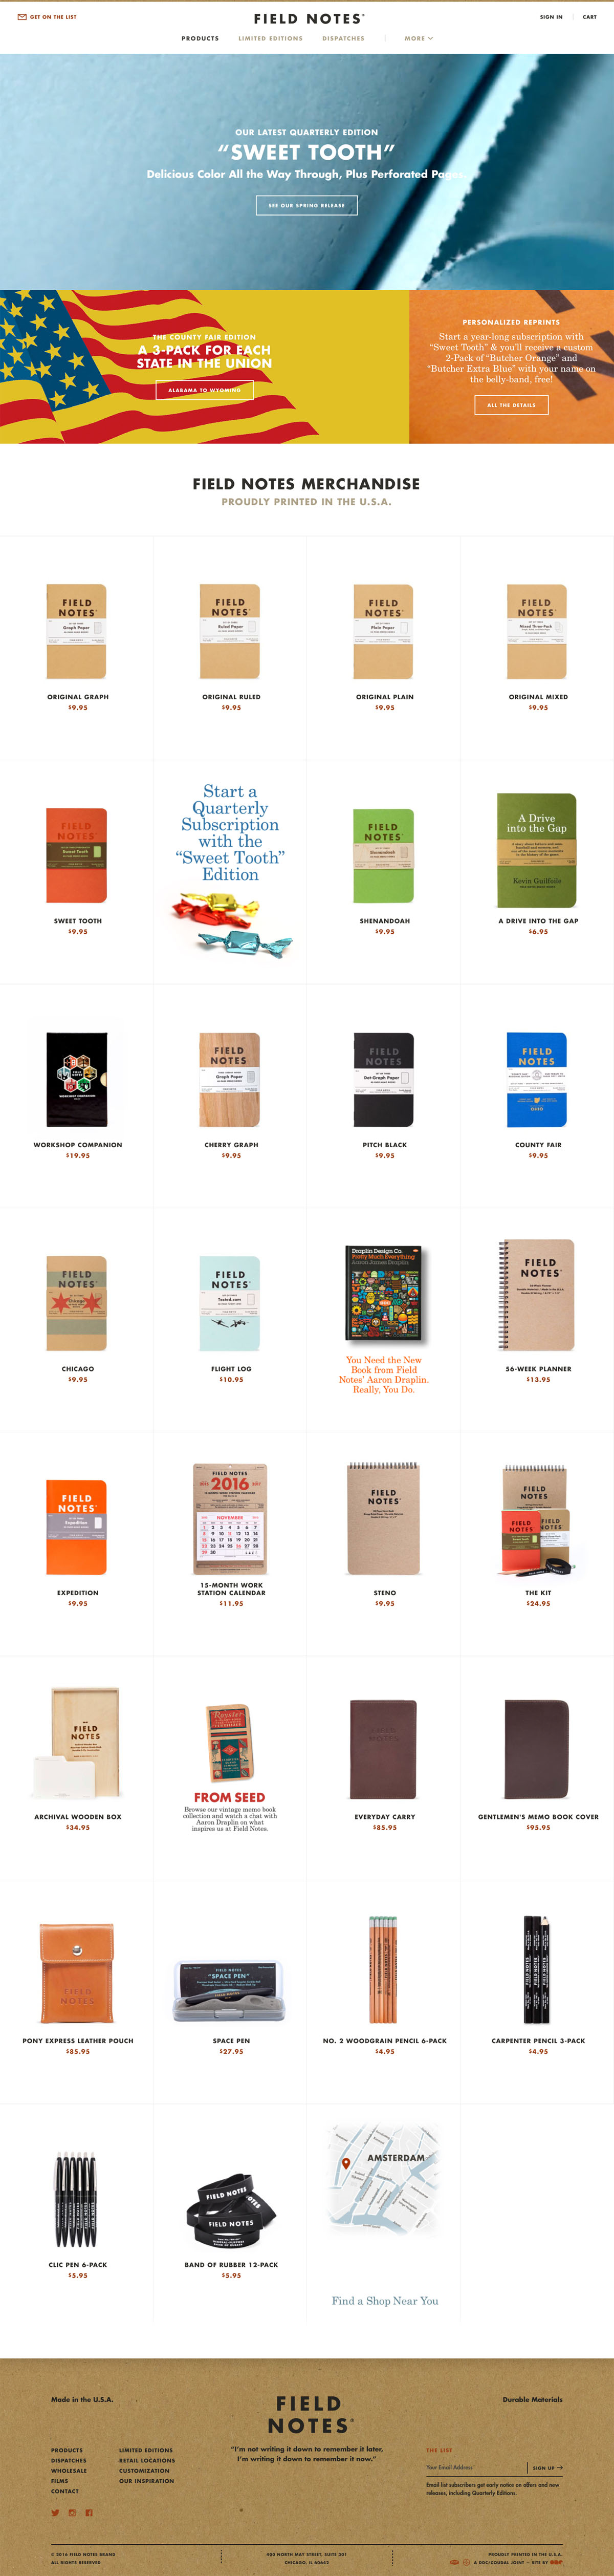 eCommerce website: Field Notes